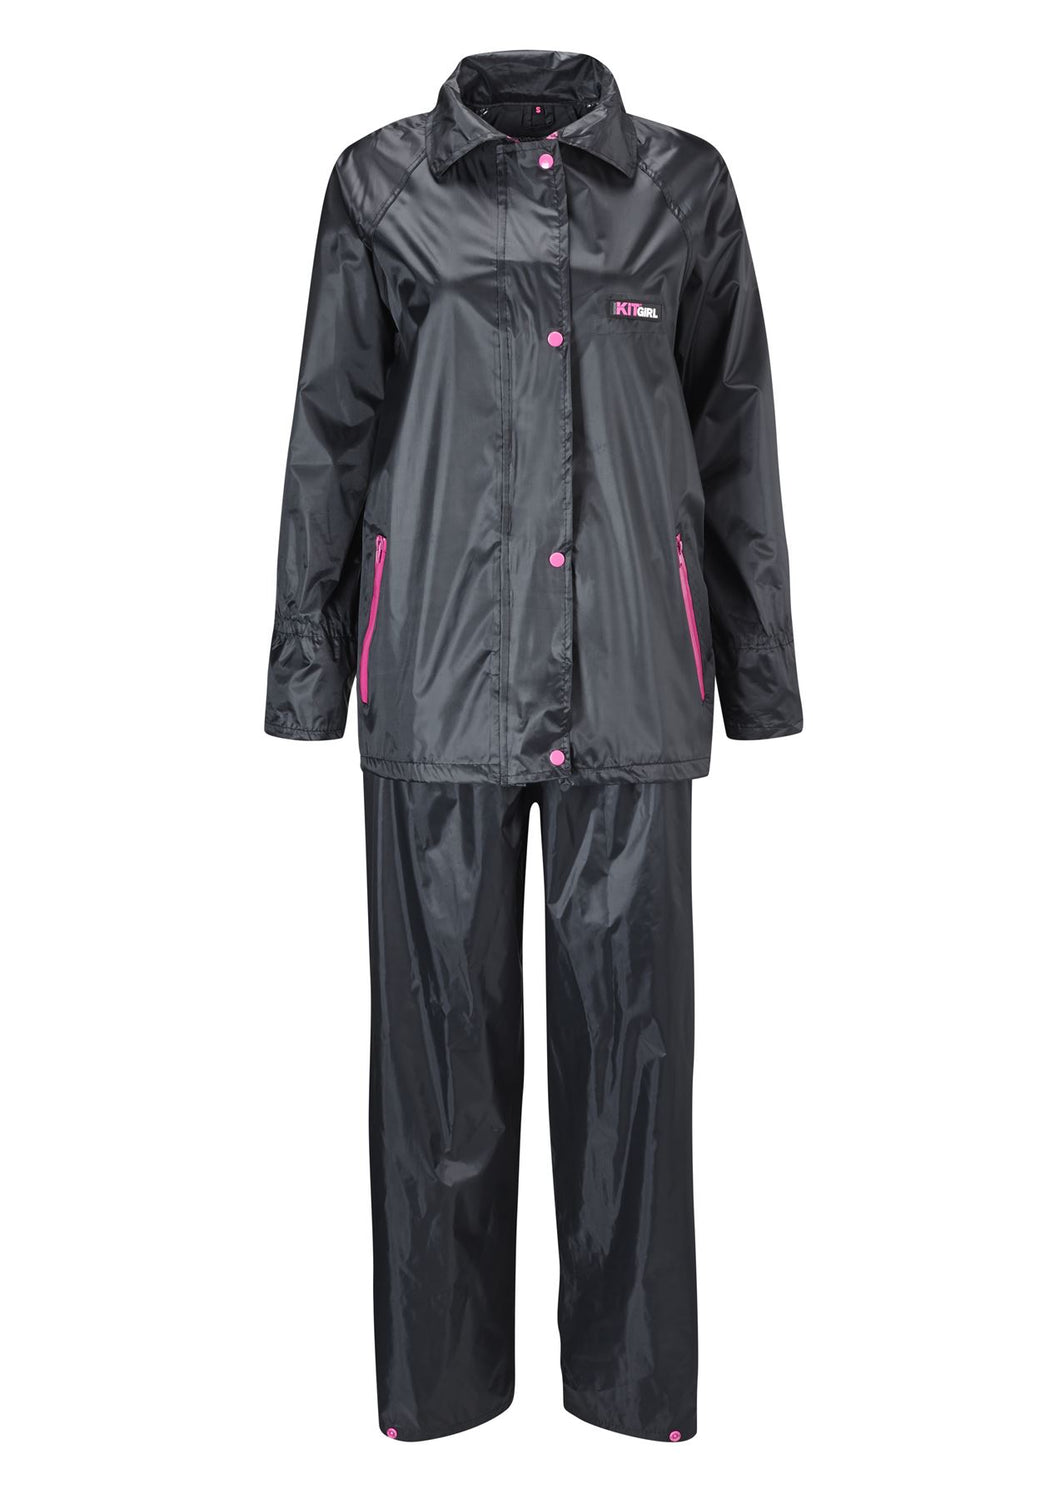 Womens Rain Suit - Black - Work Kit Girl